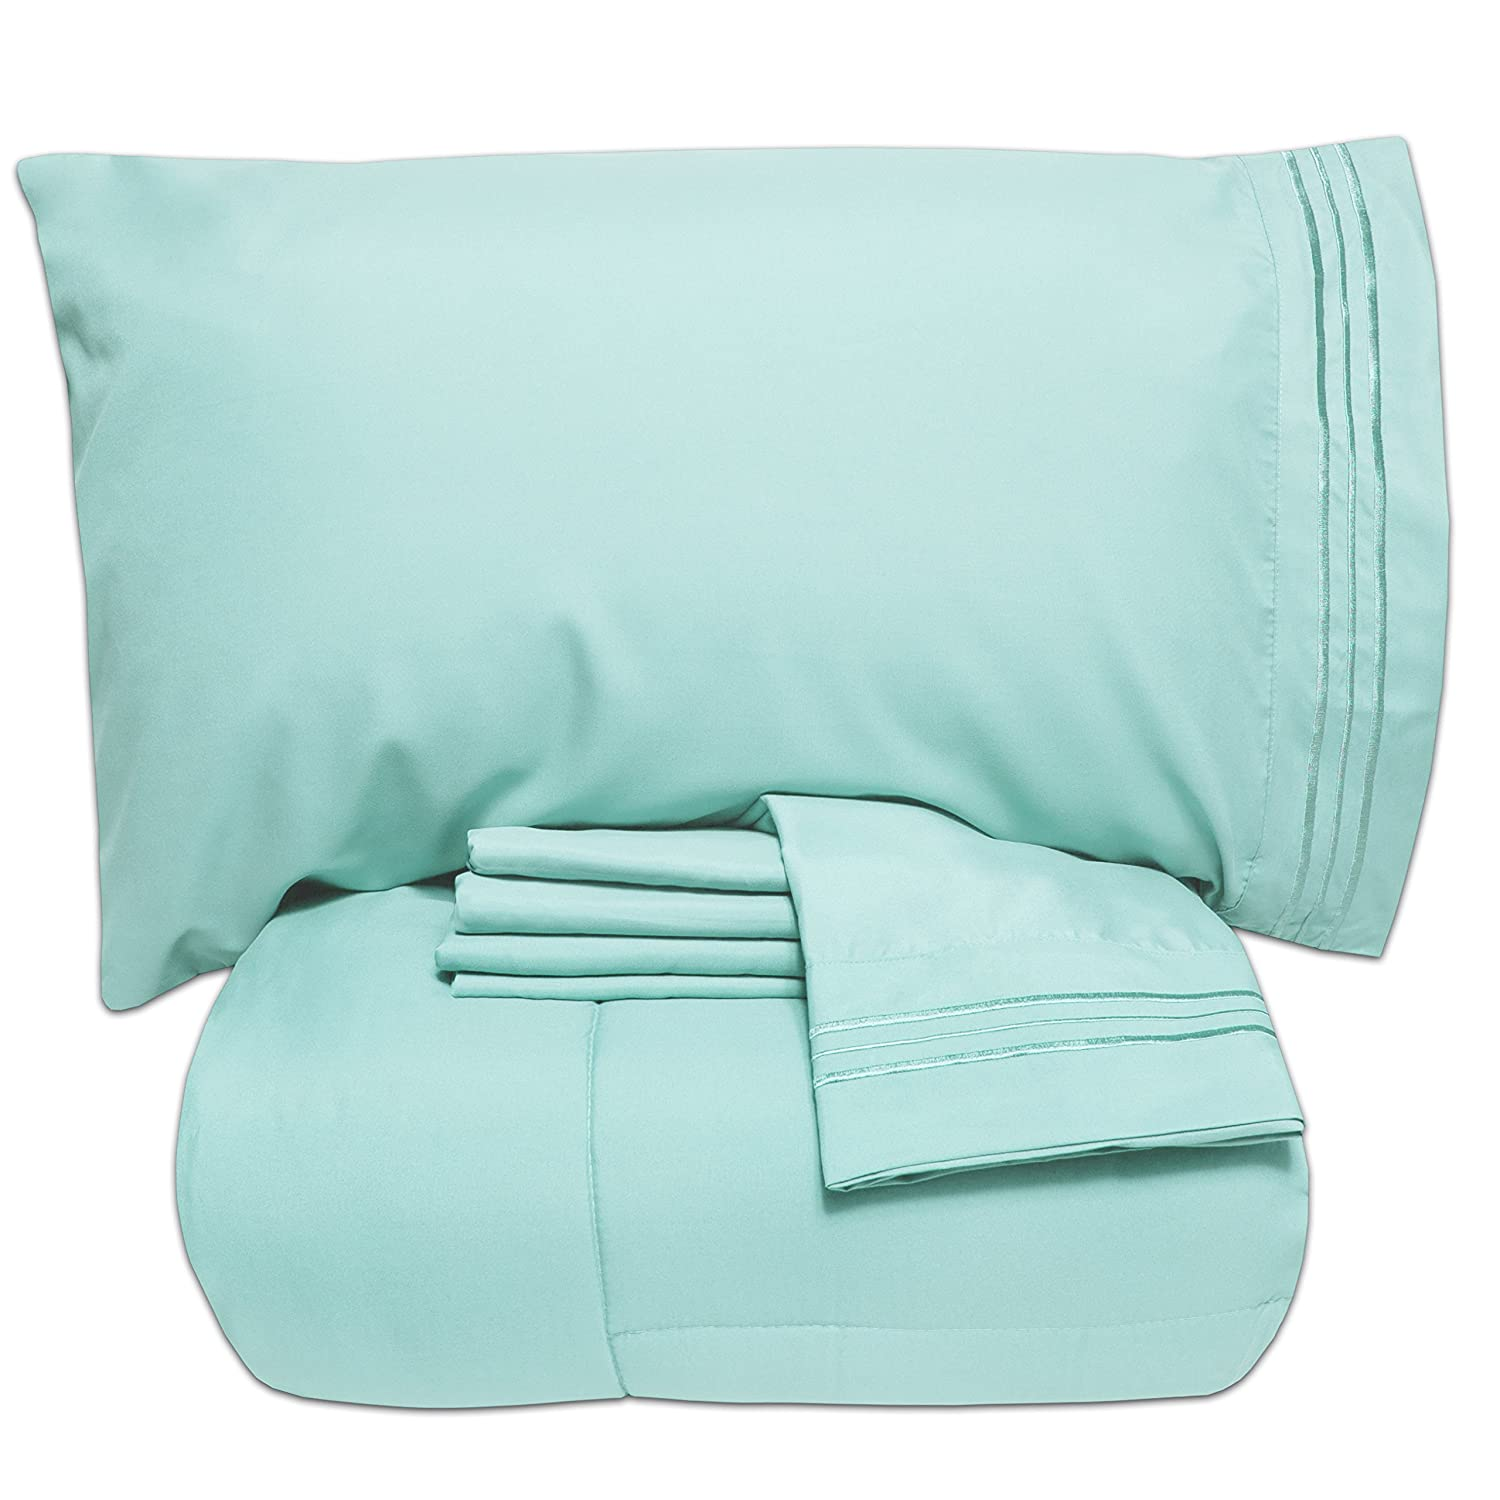 comfortable soft comforter reversible pleated twin details green mint design bedding modern astonishing sardinia unique white charming set bedroom and piece wall cute bedspreads for hip pinch cozy blue of image quilt pleat ruffles super with ideas turquoise amazing